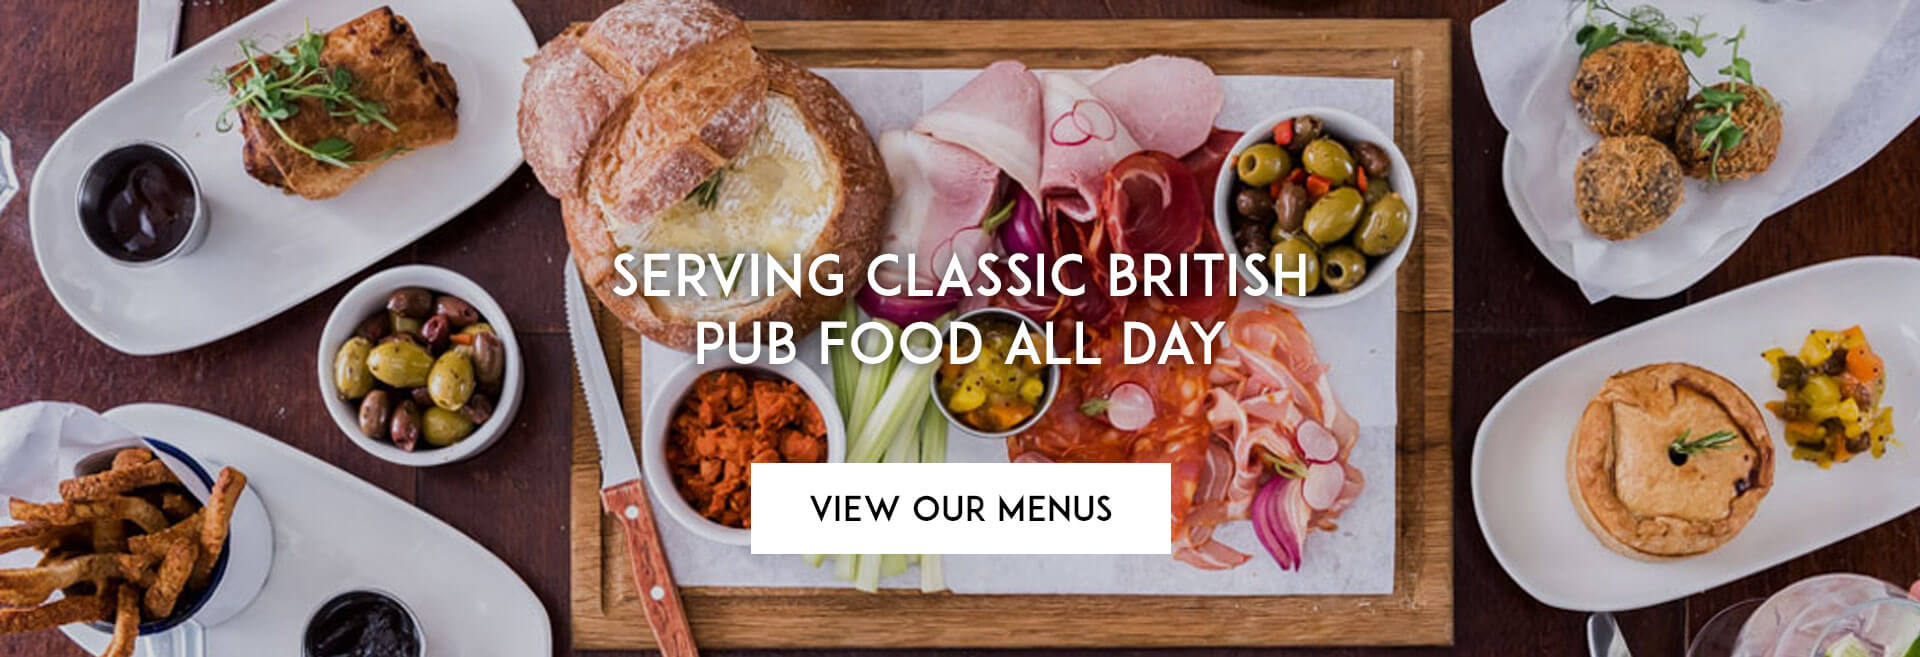 View our Menu at The Plough on the Moor